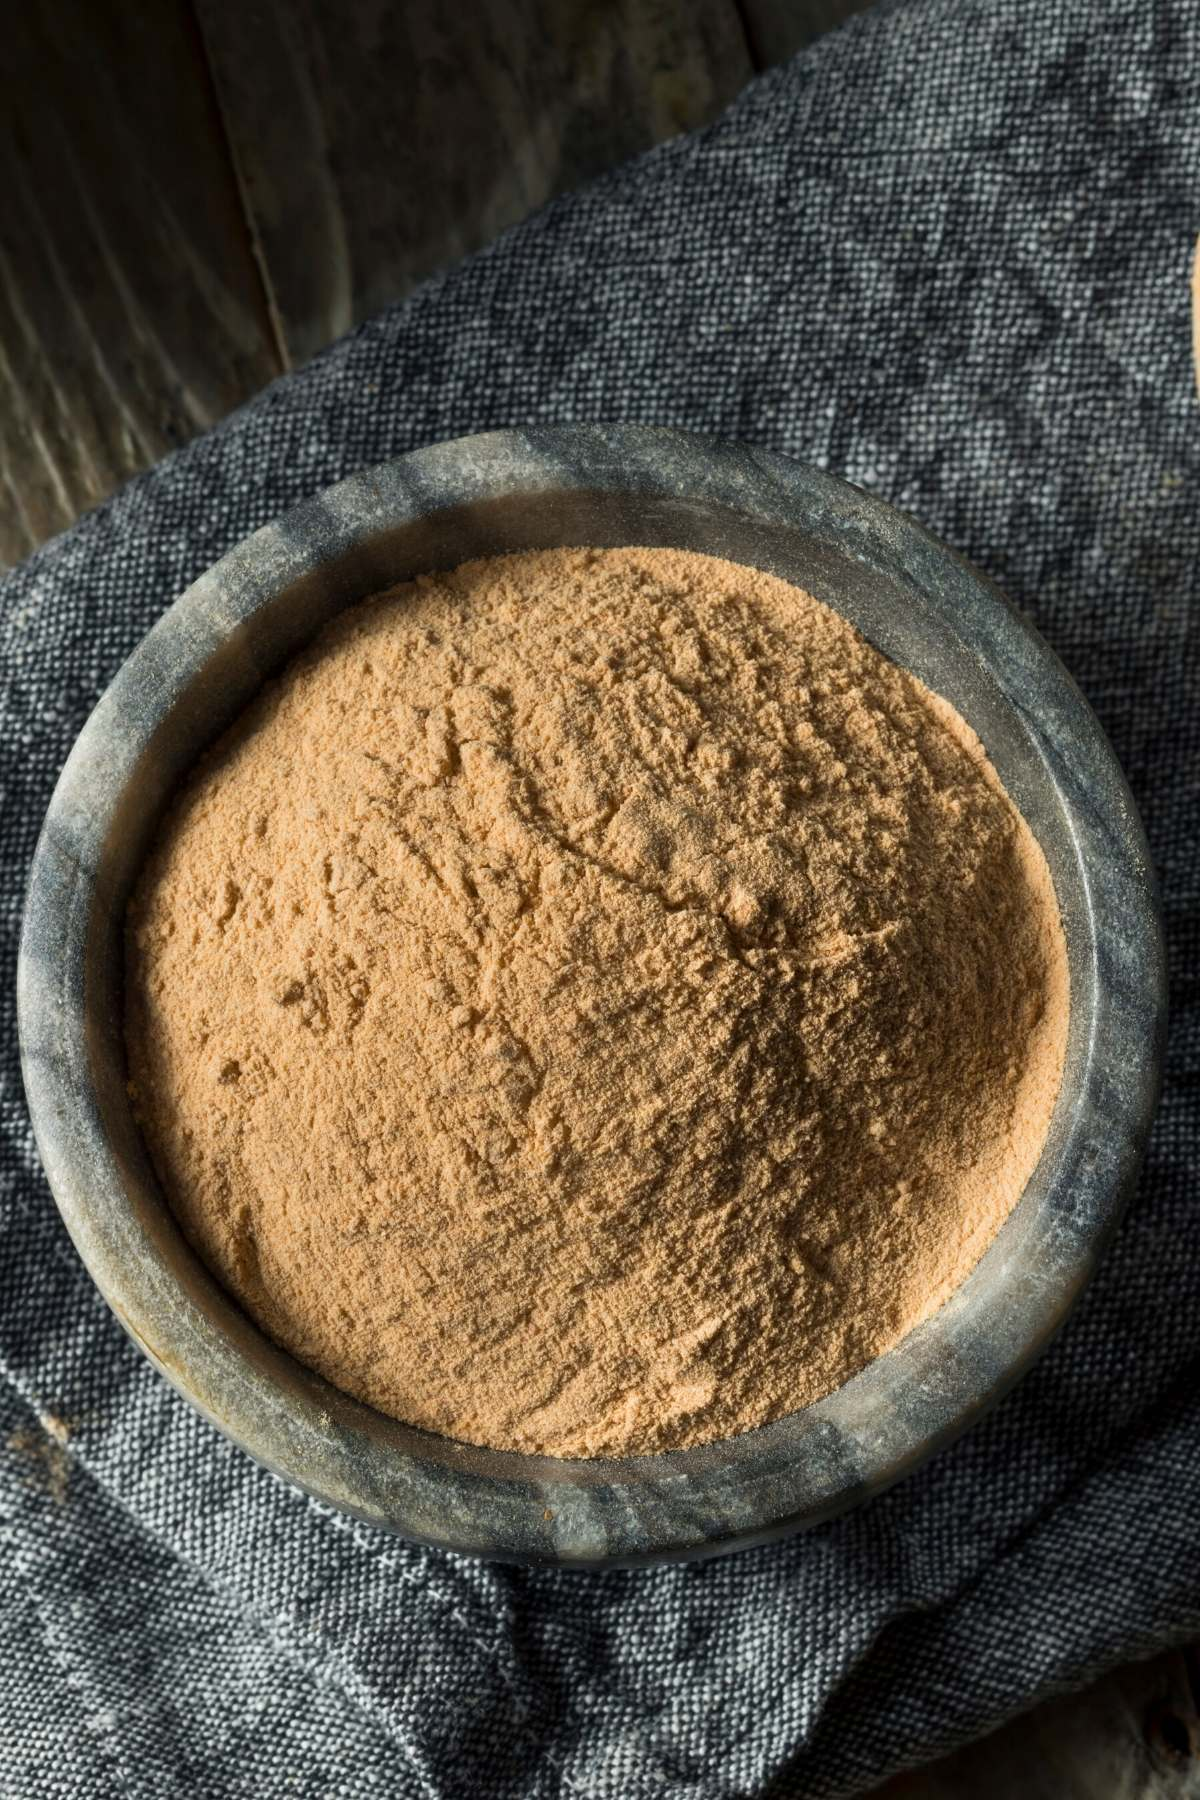 brown lentil powder in a bowl